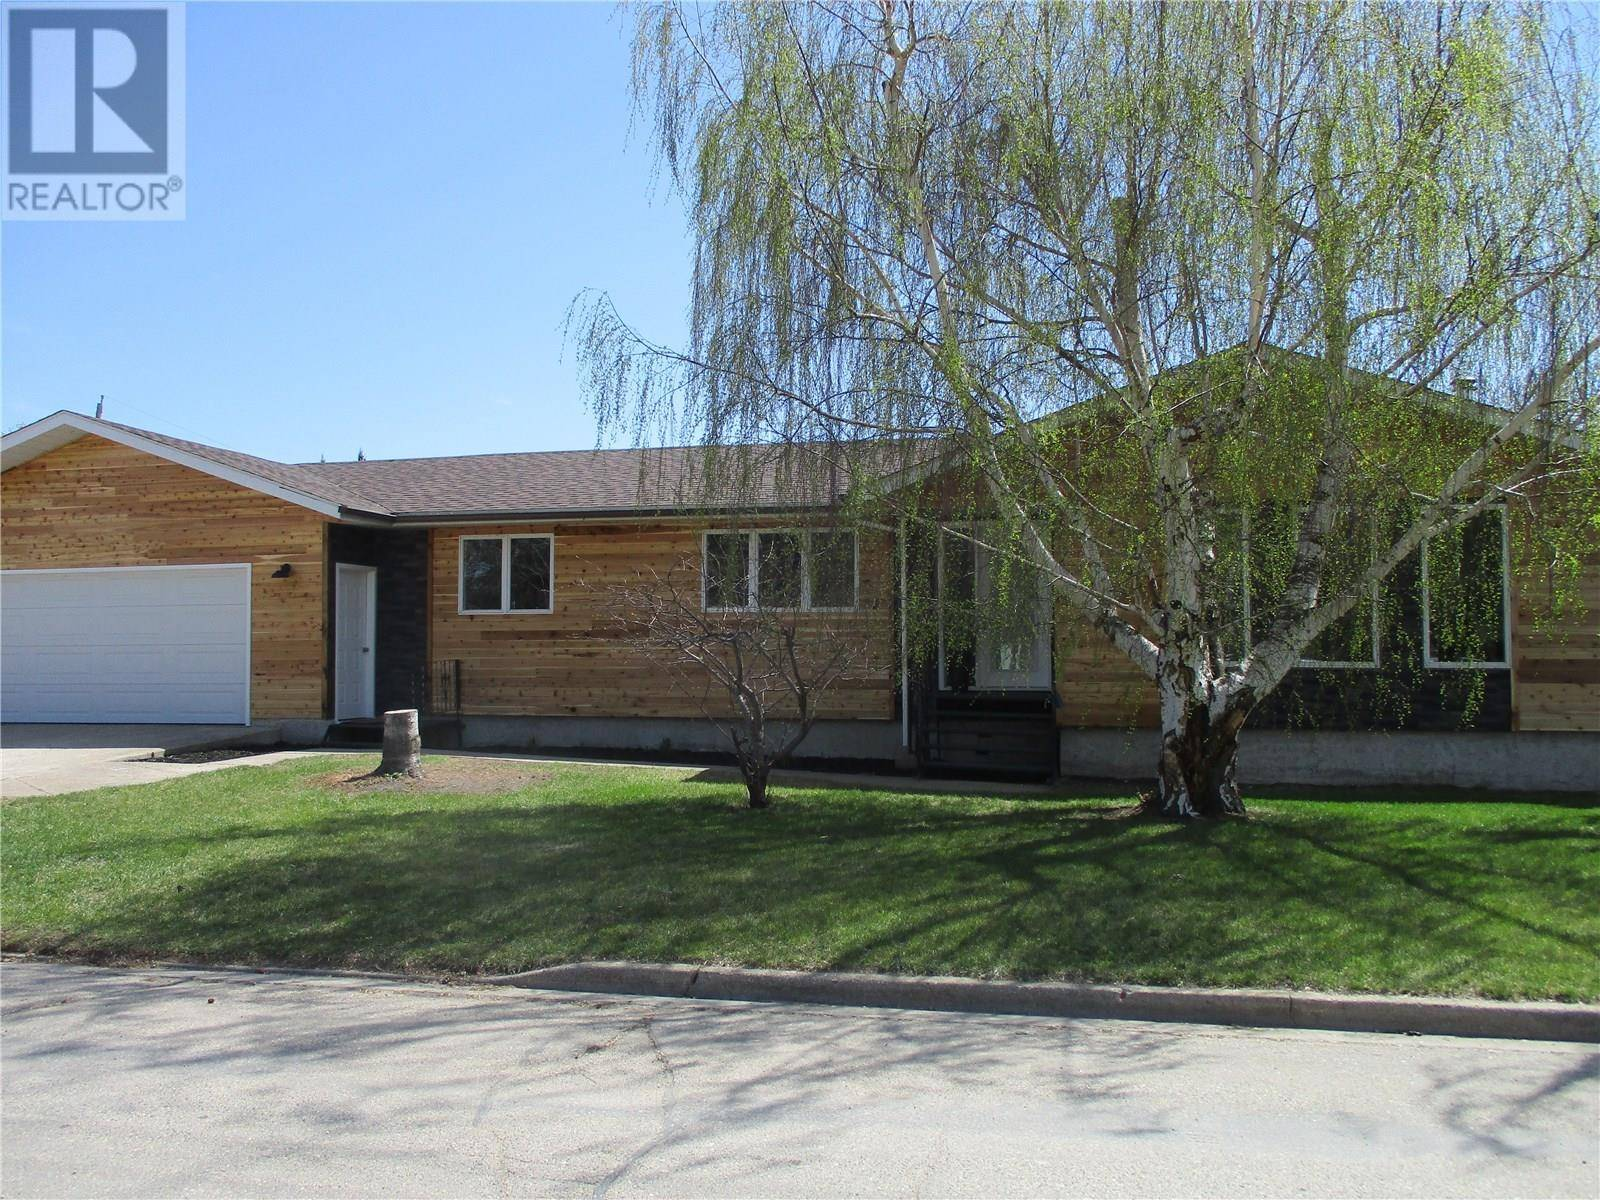 House for sale at 302 5th Ave E Melville Saskatchewan - MLS: SK771810